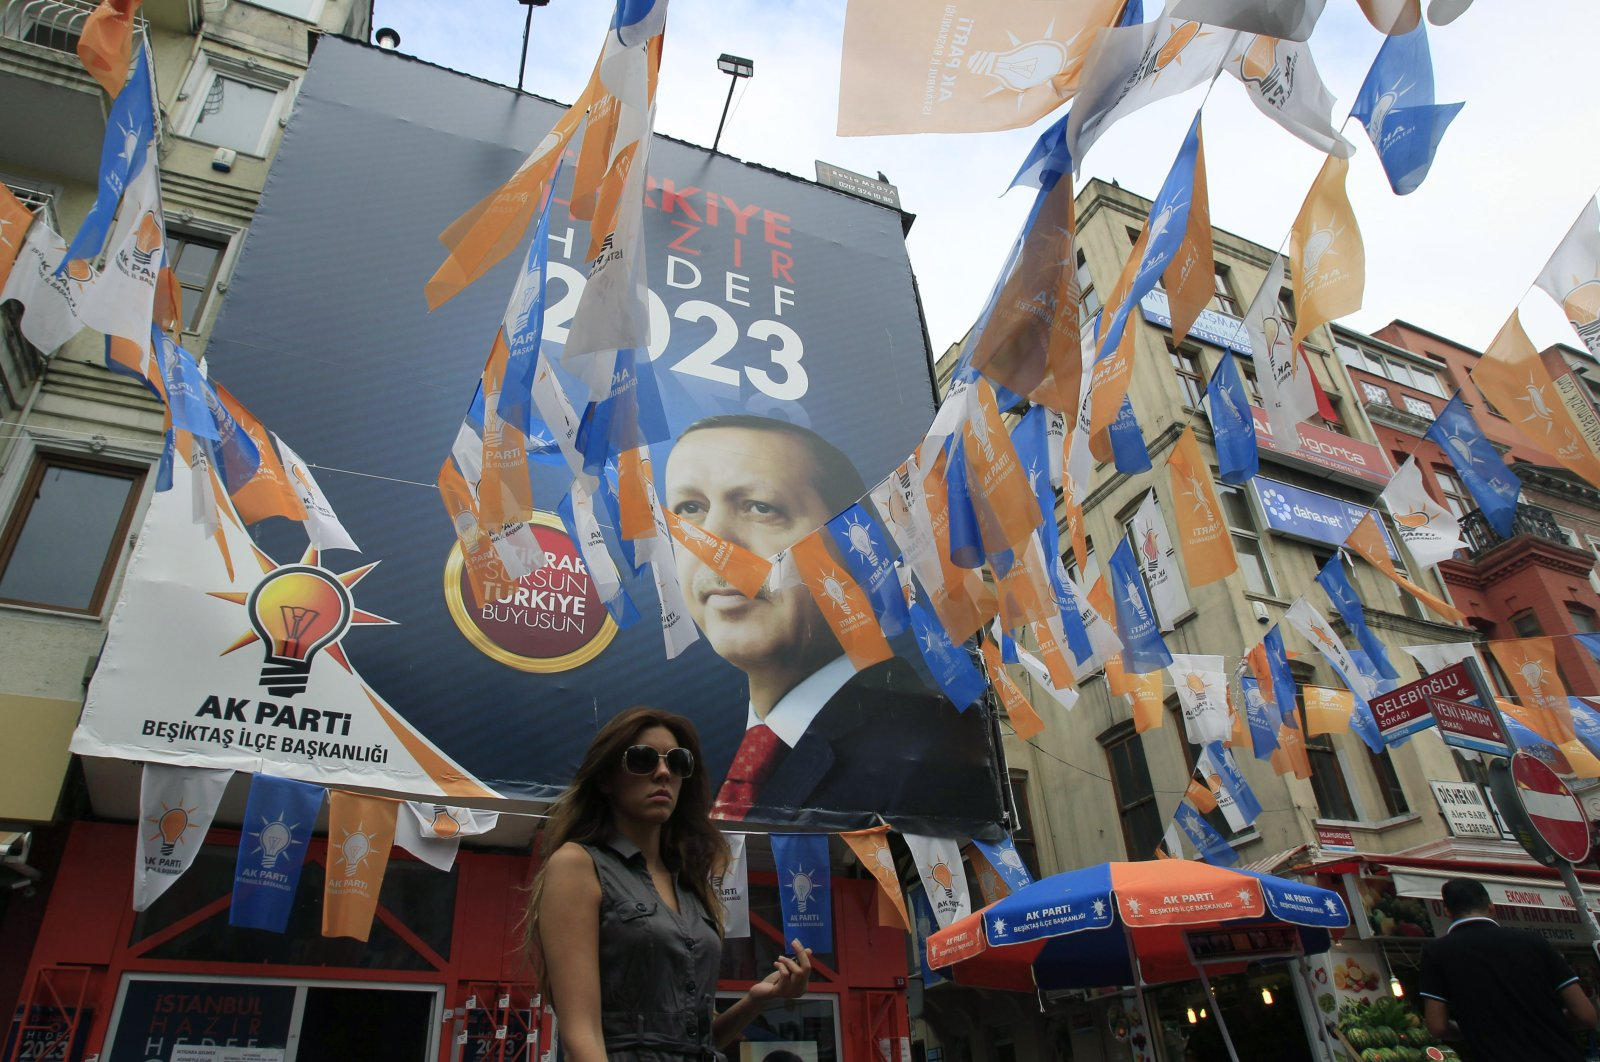 A pedestrian passes an election center for the AK Party displaying a photo of Recep Tayyip Erdoğan, in Istanbul, Saturday, June 11, 2011. (AP Photo)